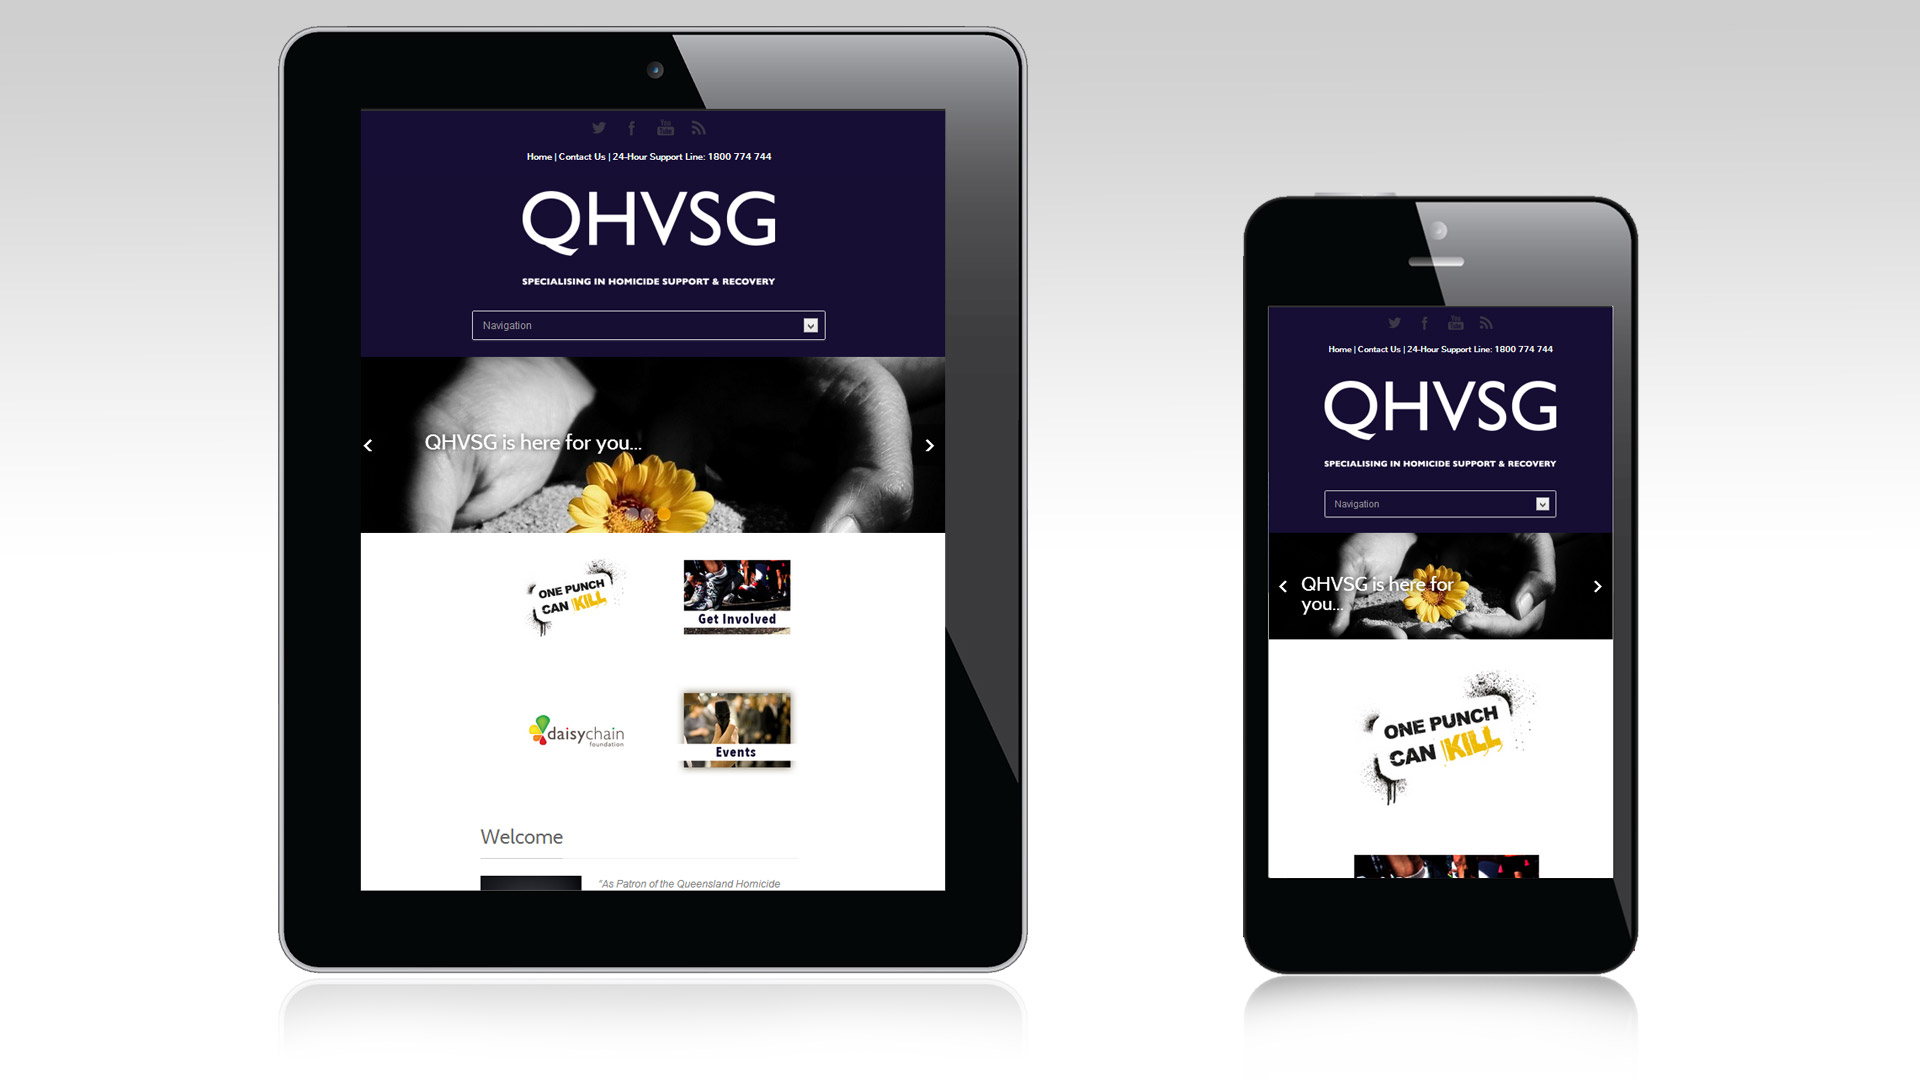 QHVSG homepage tablet and mobile views